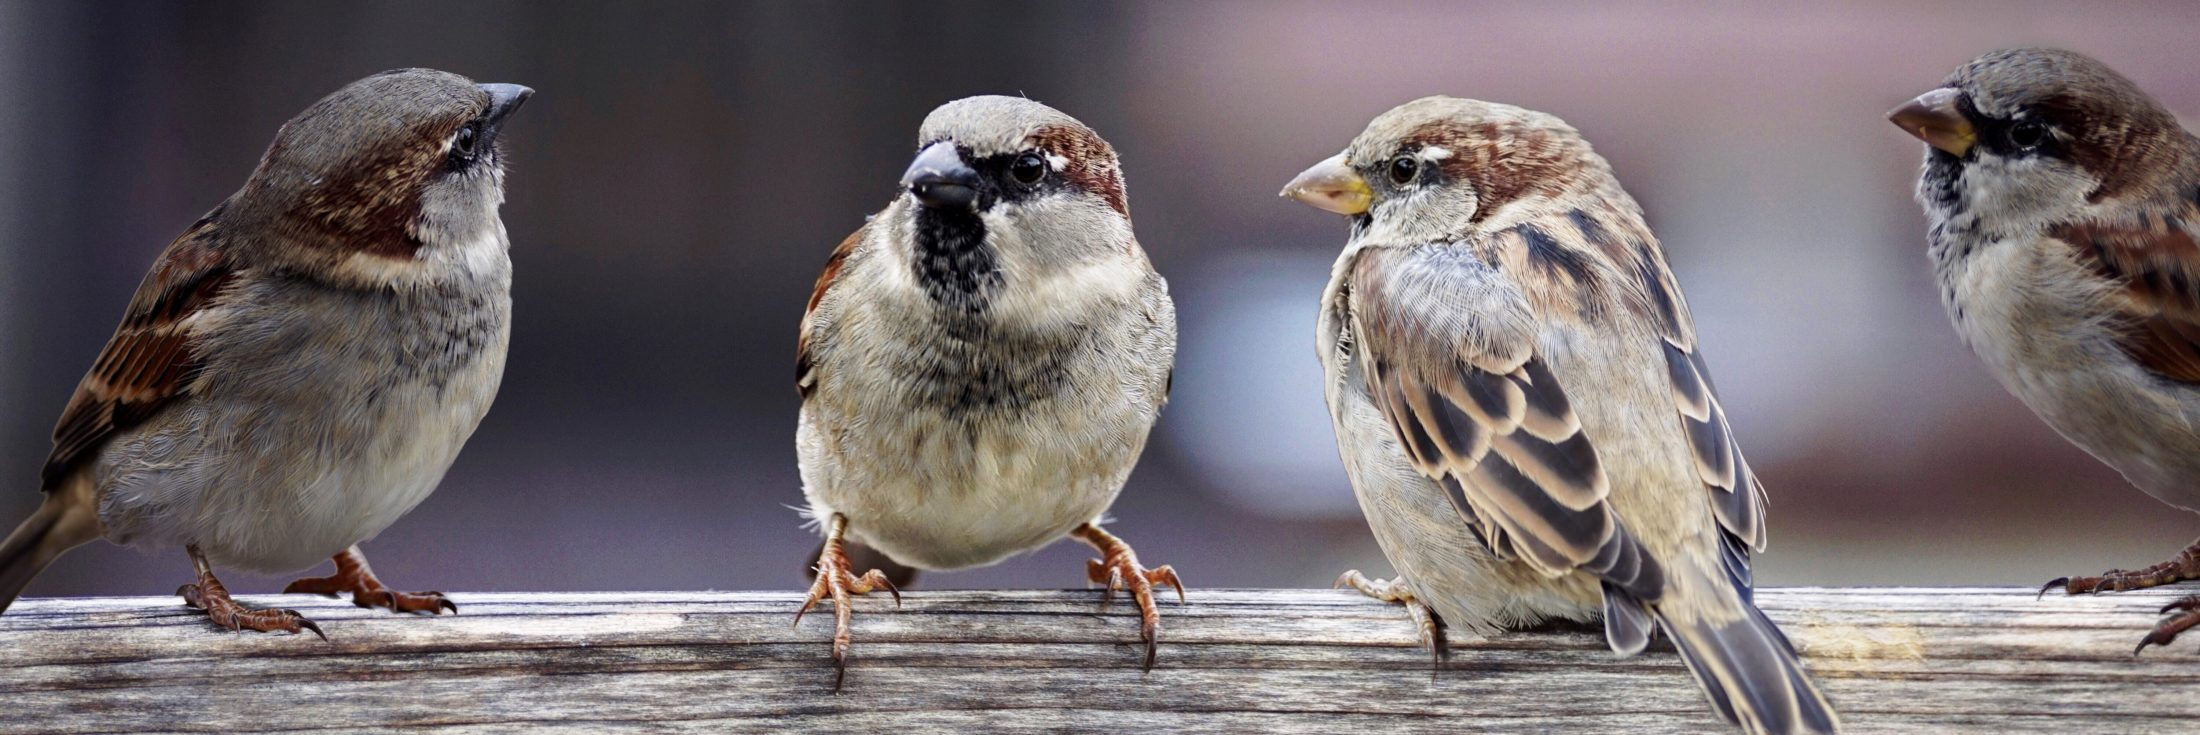 THE LAND THAT KNOWS ME: MY SPARROW FRIENDS IN NEW YORK'S CENTRAL PARK